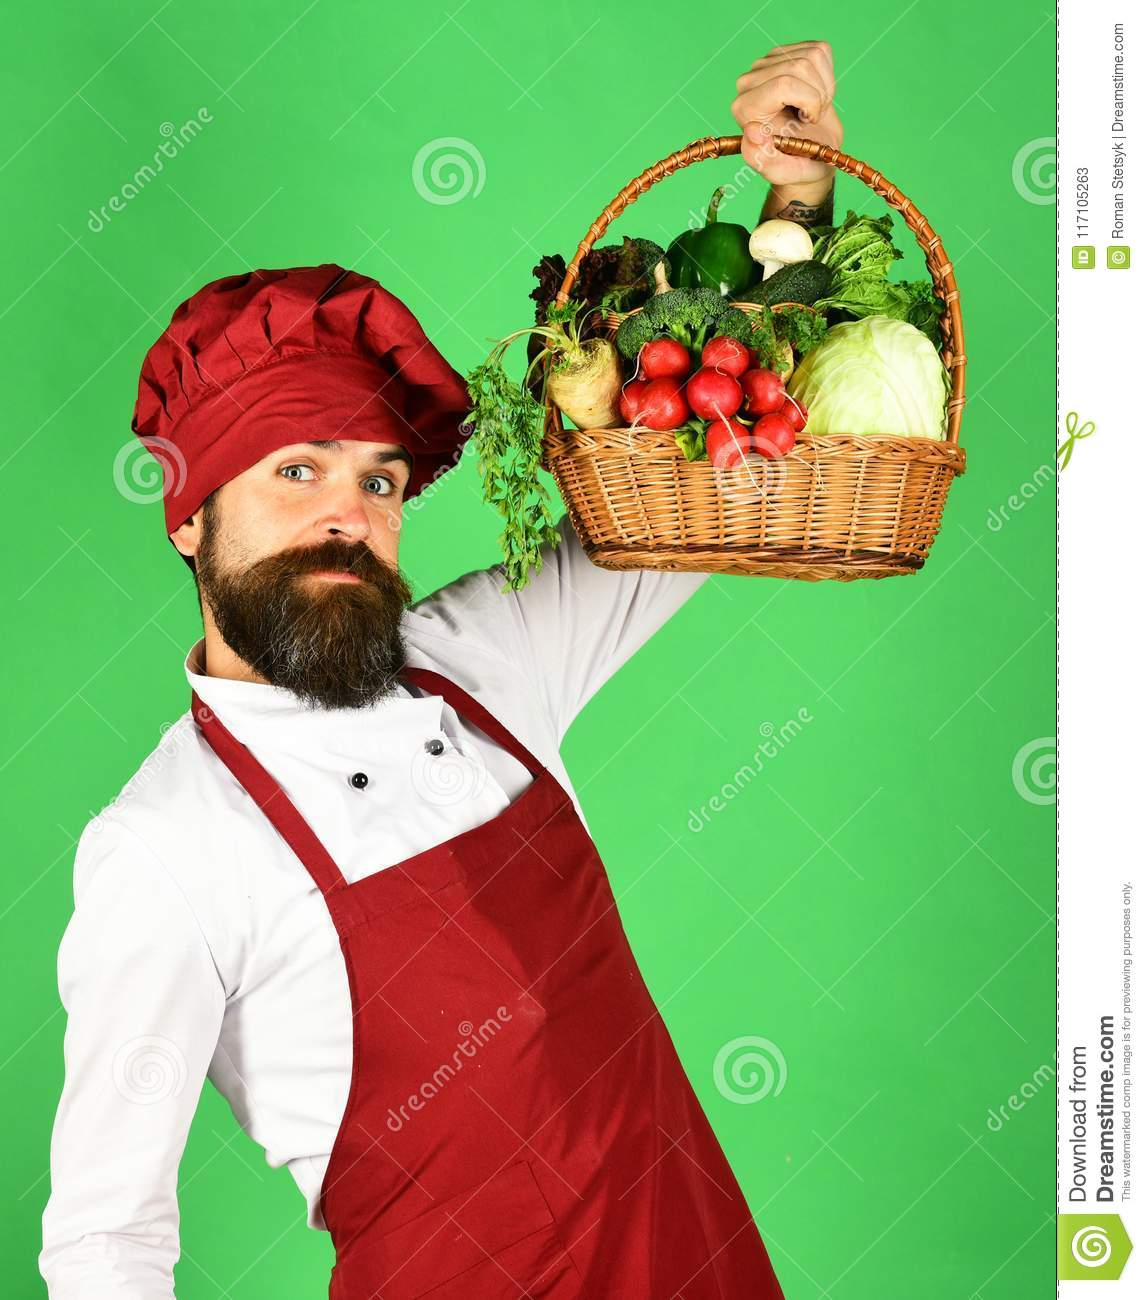 man with beard on green background chef holds ve stock image